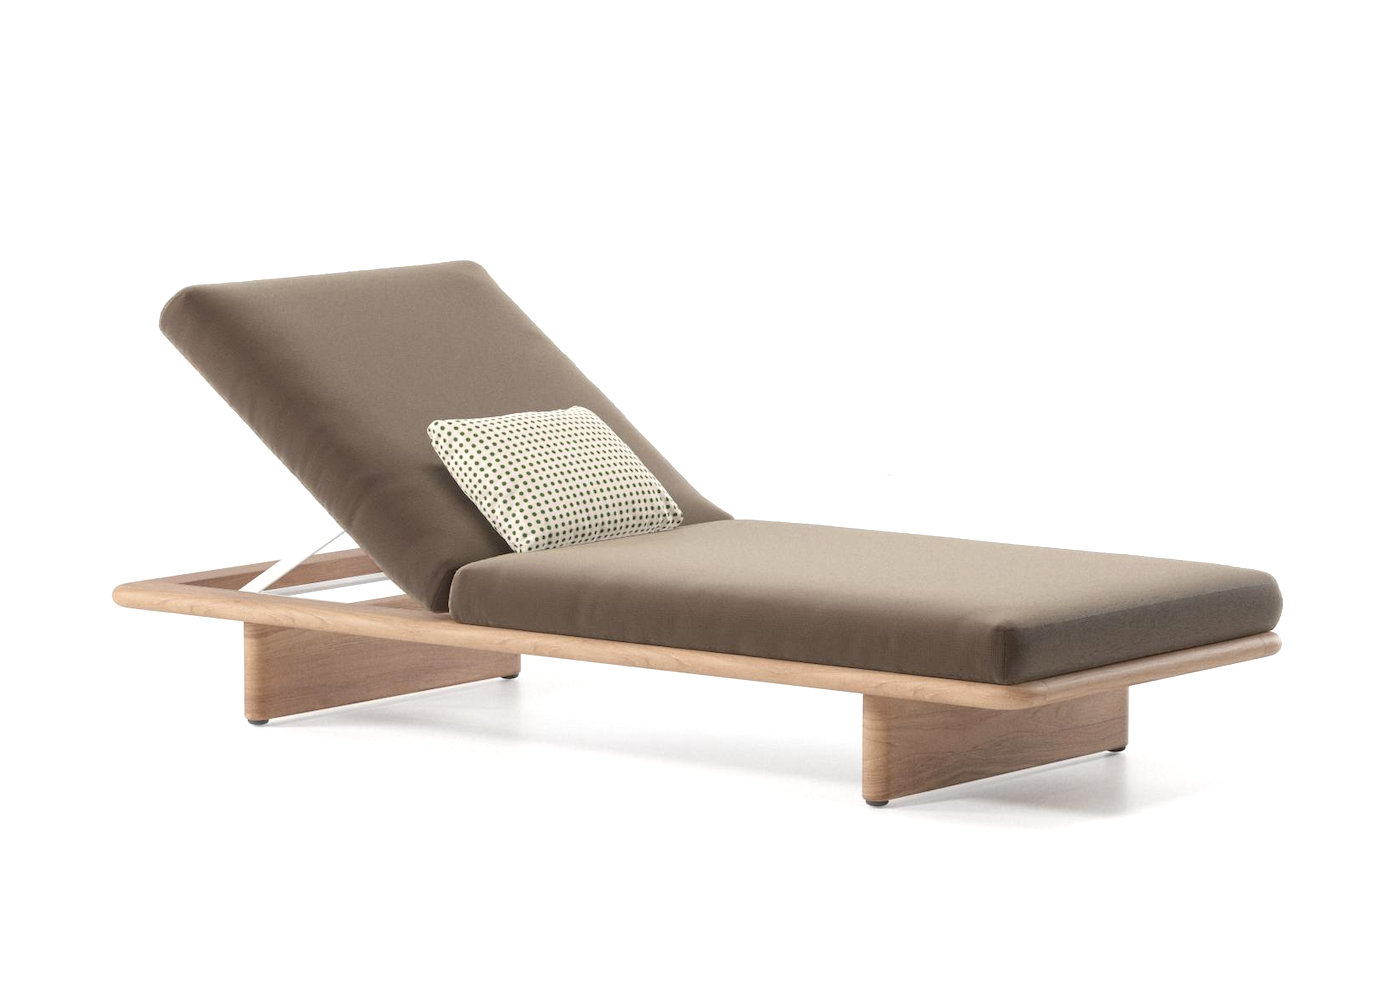 Product Image Mesh Sunlounger